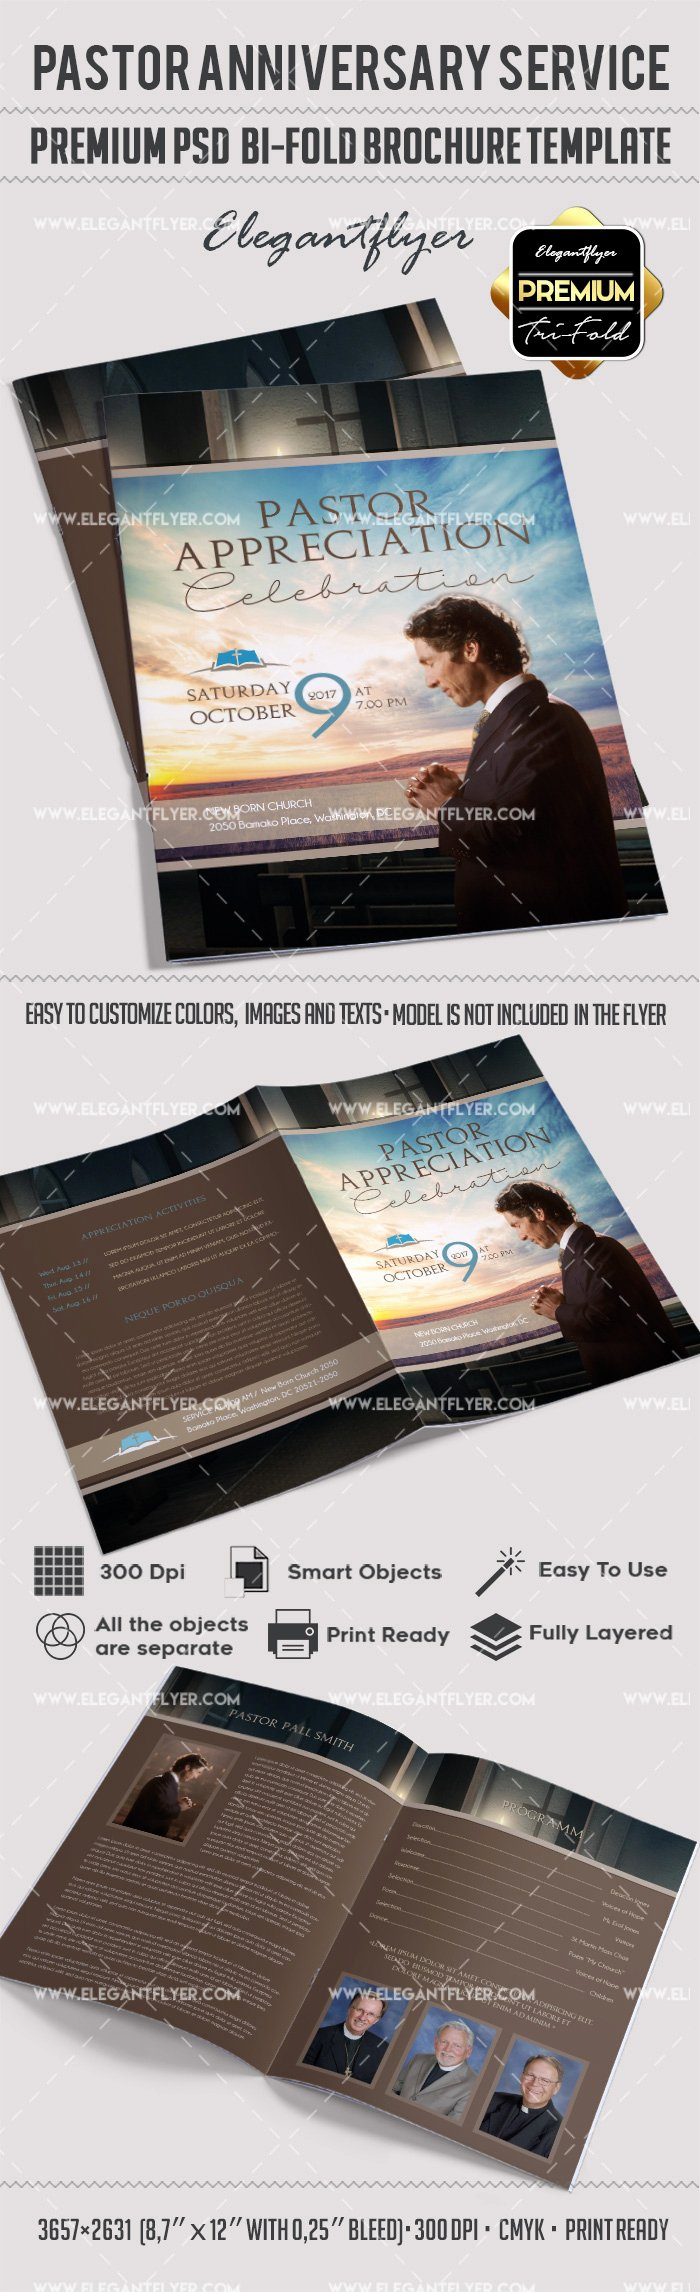 Bi Fold Program Template Awesome Pastor Appreciation Day Brochure – by Elegantflyer